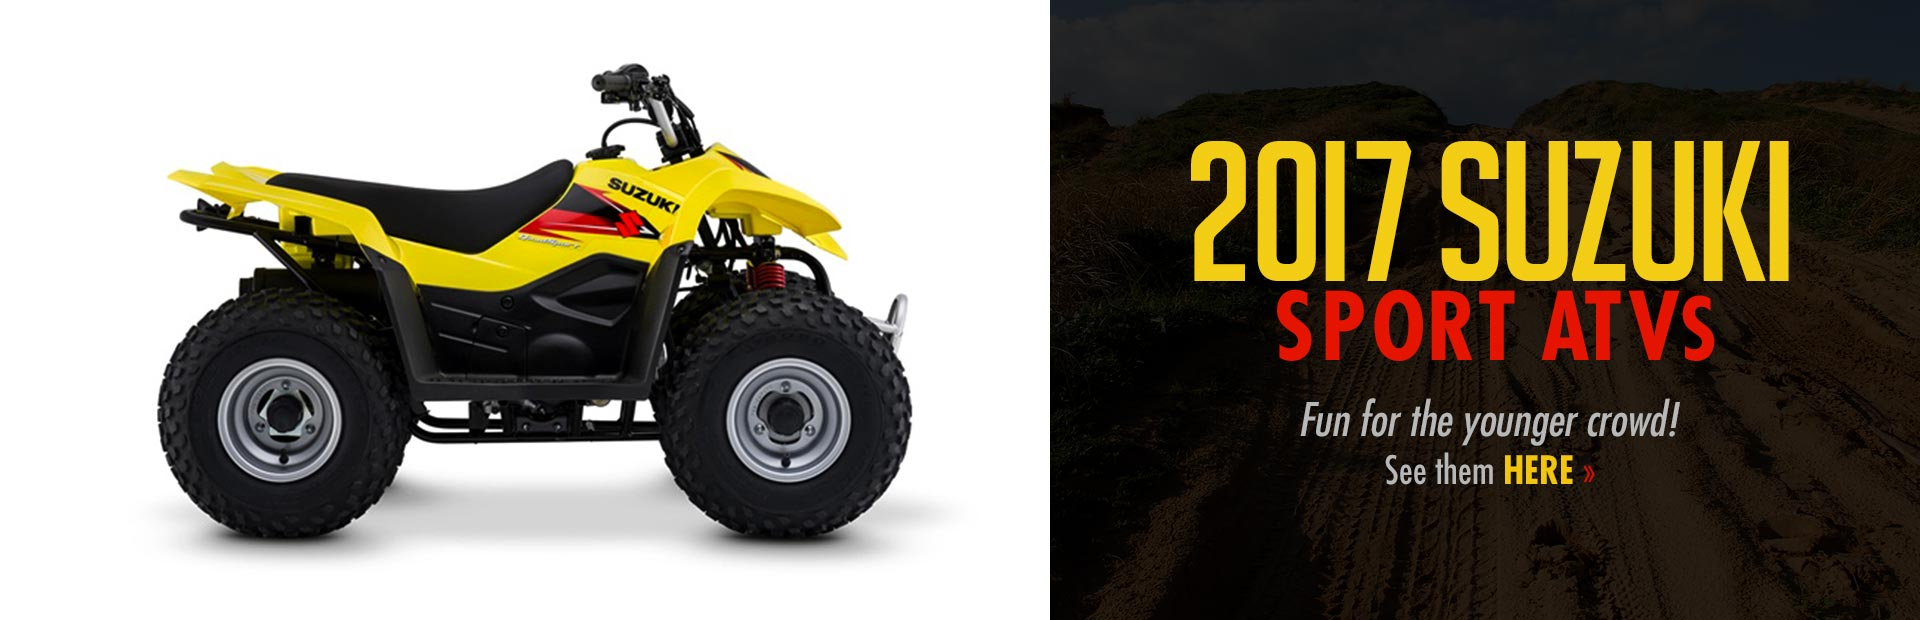 2017 Suzuki Sport ATVs are fun for the younger crowd! Click here to view our selection.